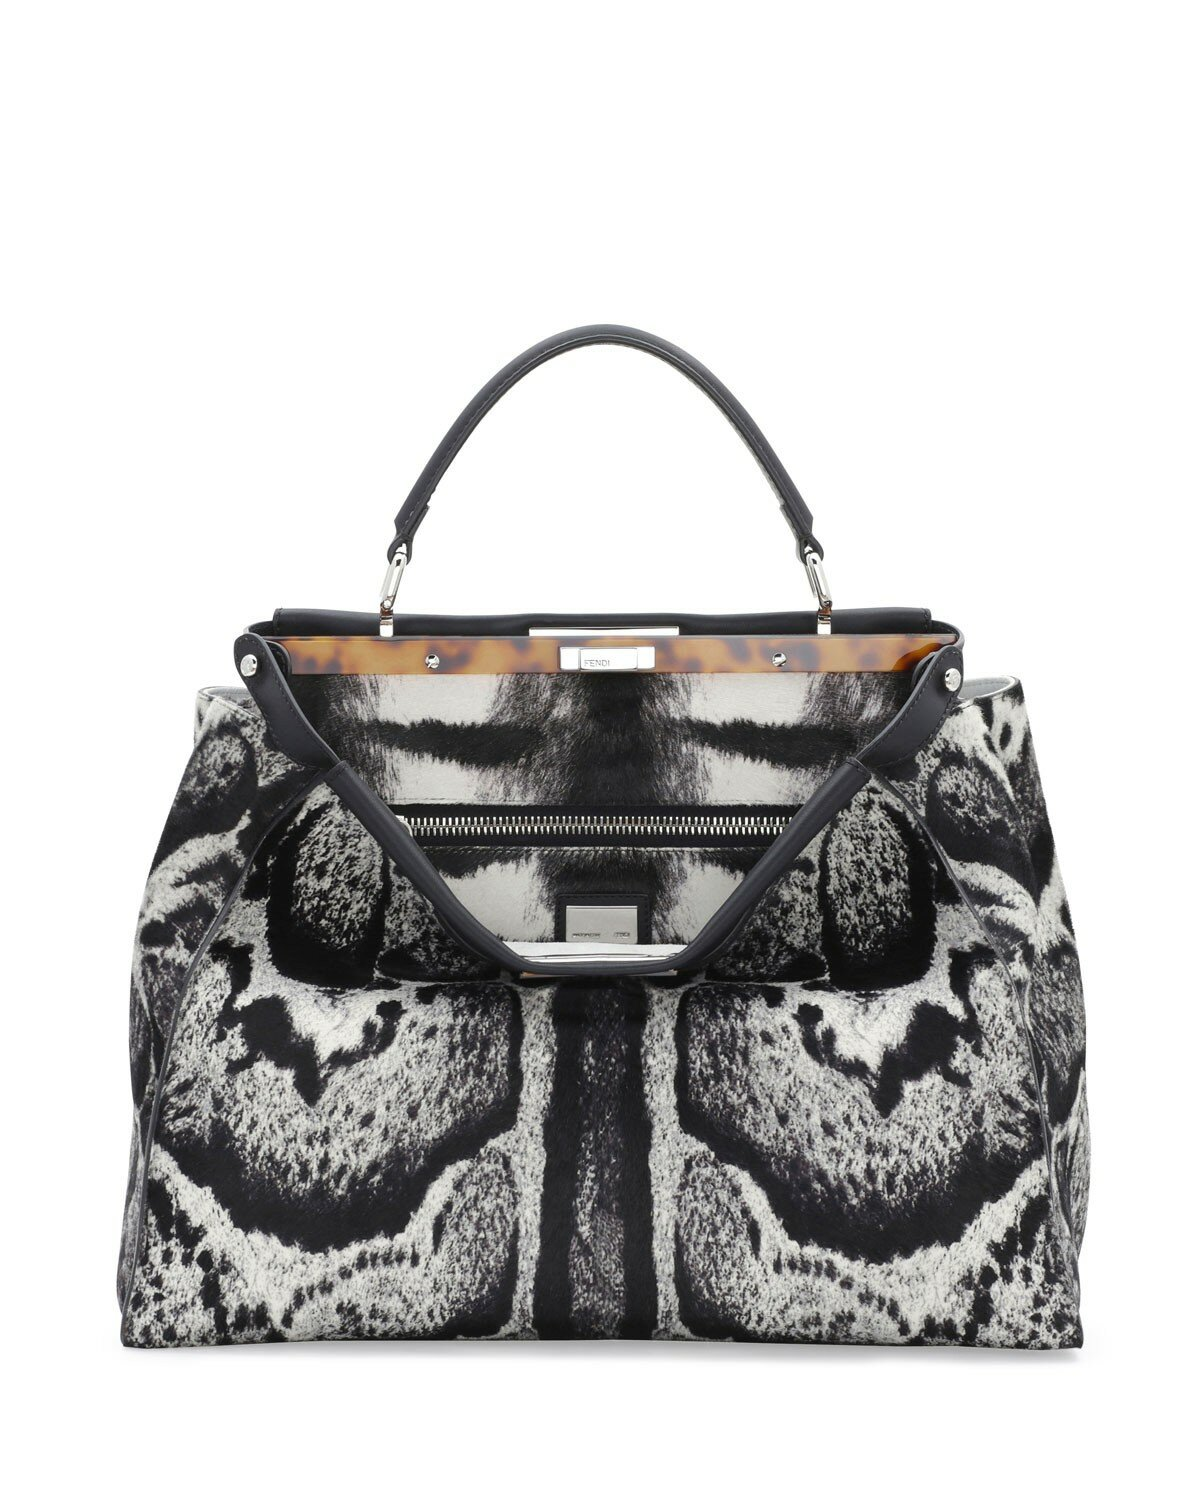 Fendi peekaboo large calf hair satchel bag white/black,exclusive deals chicago,exclusive chicago